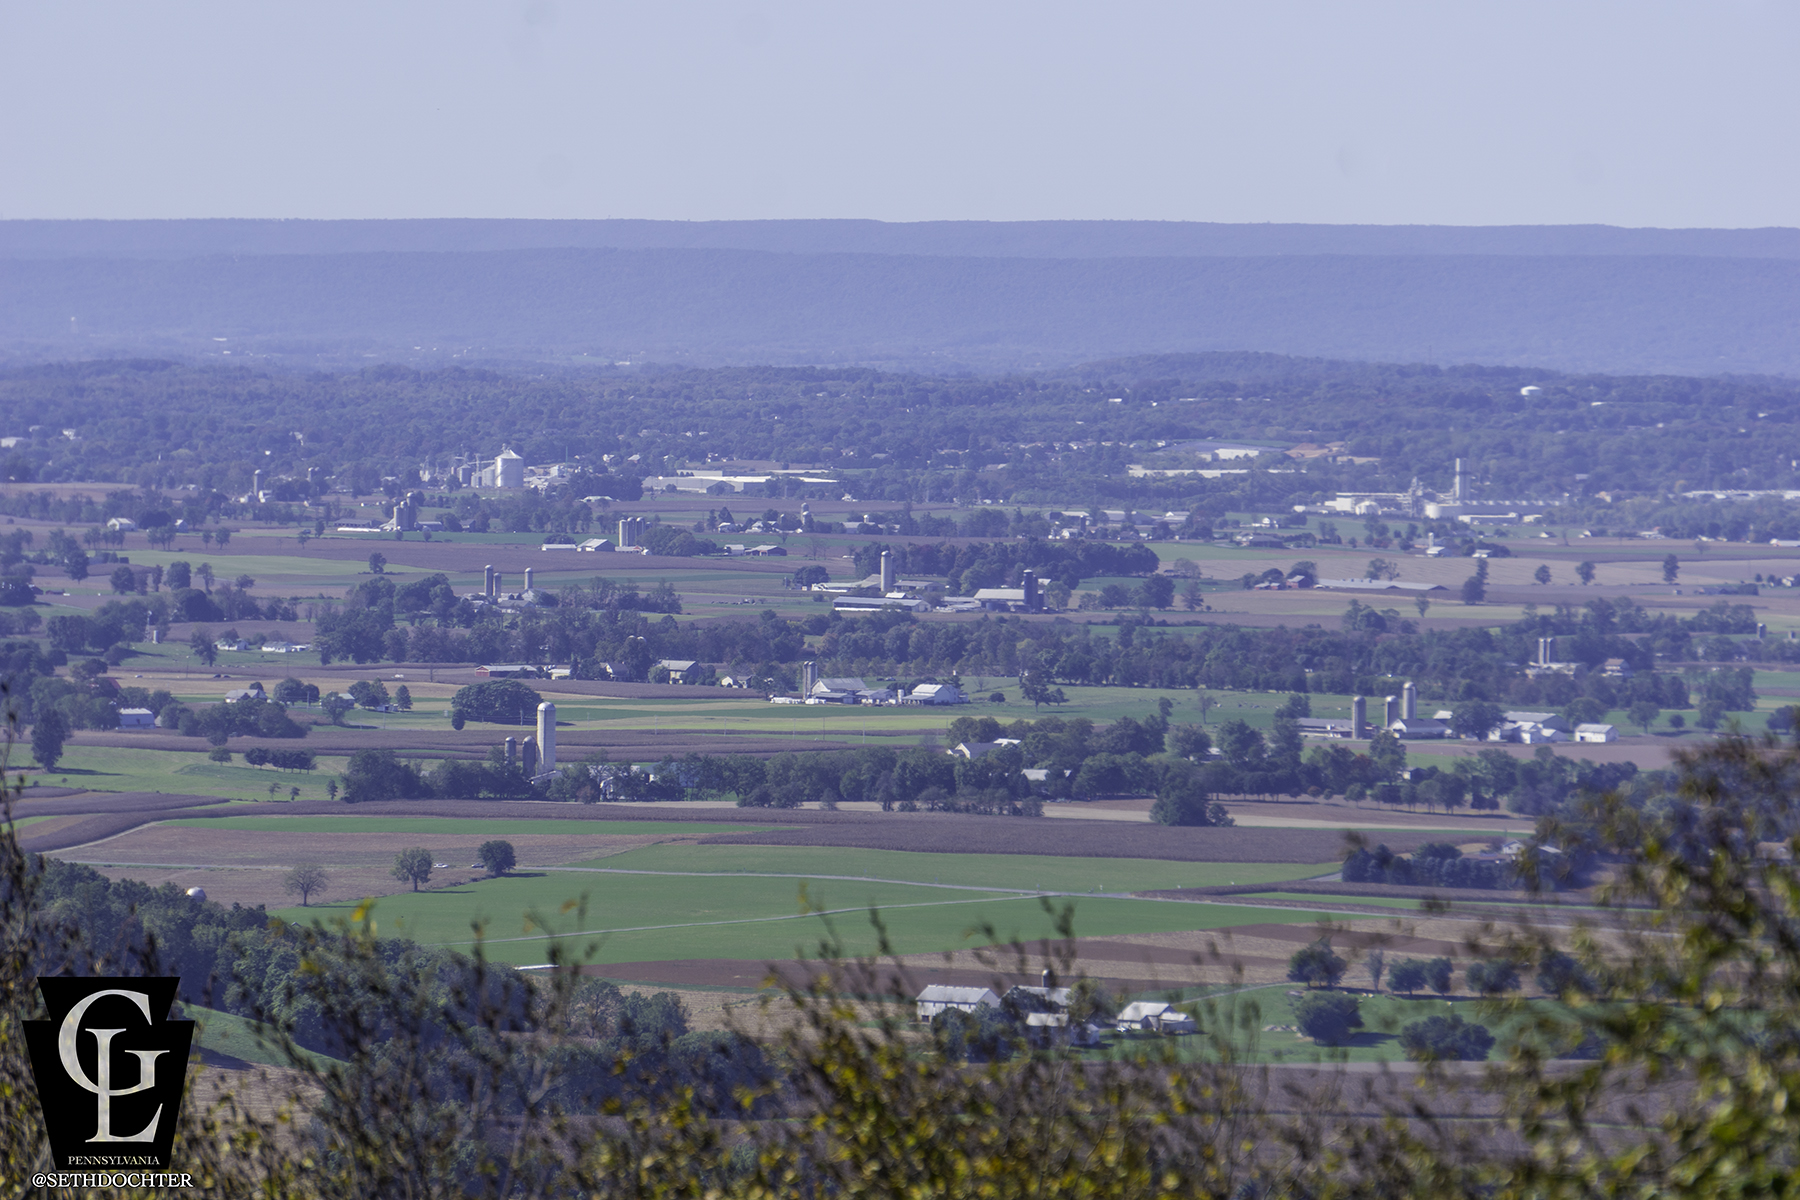 The view of the Lebanon Valley from the peak of South Mountain. The peak is at the edge of State Game Lands 225. Approximate elevation 1364'